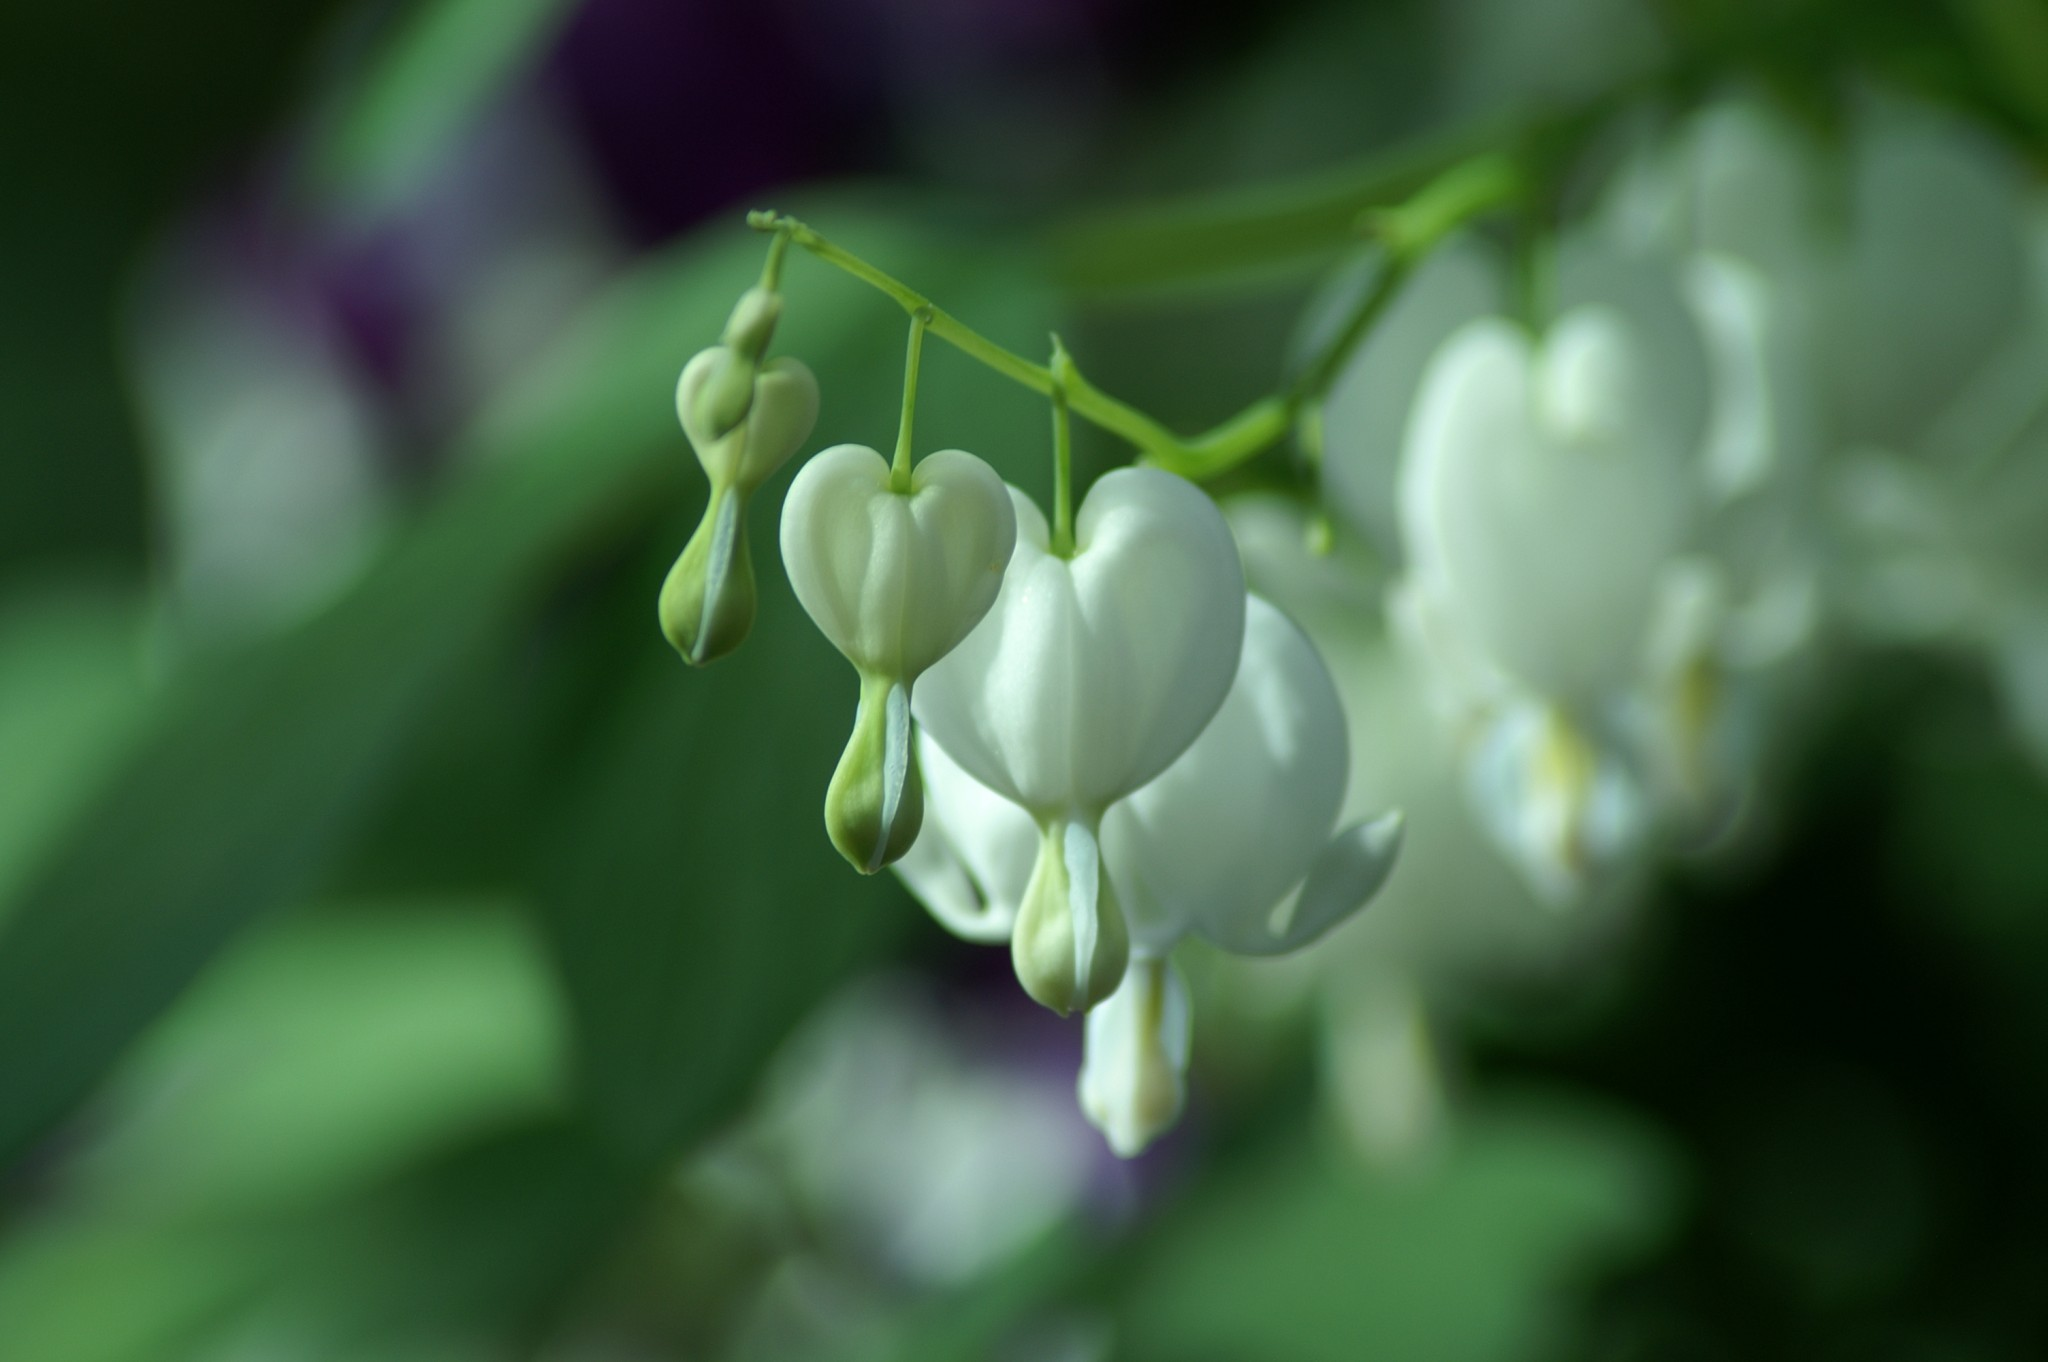 Close Up of White Bleeding Heart Flowers by CloseUp Images